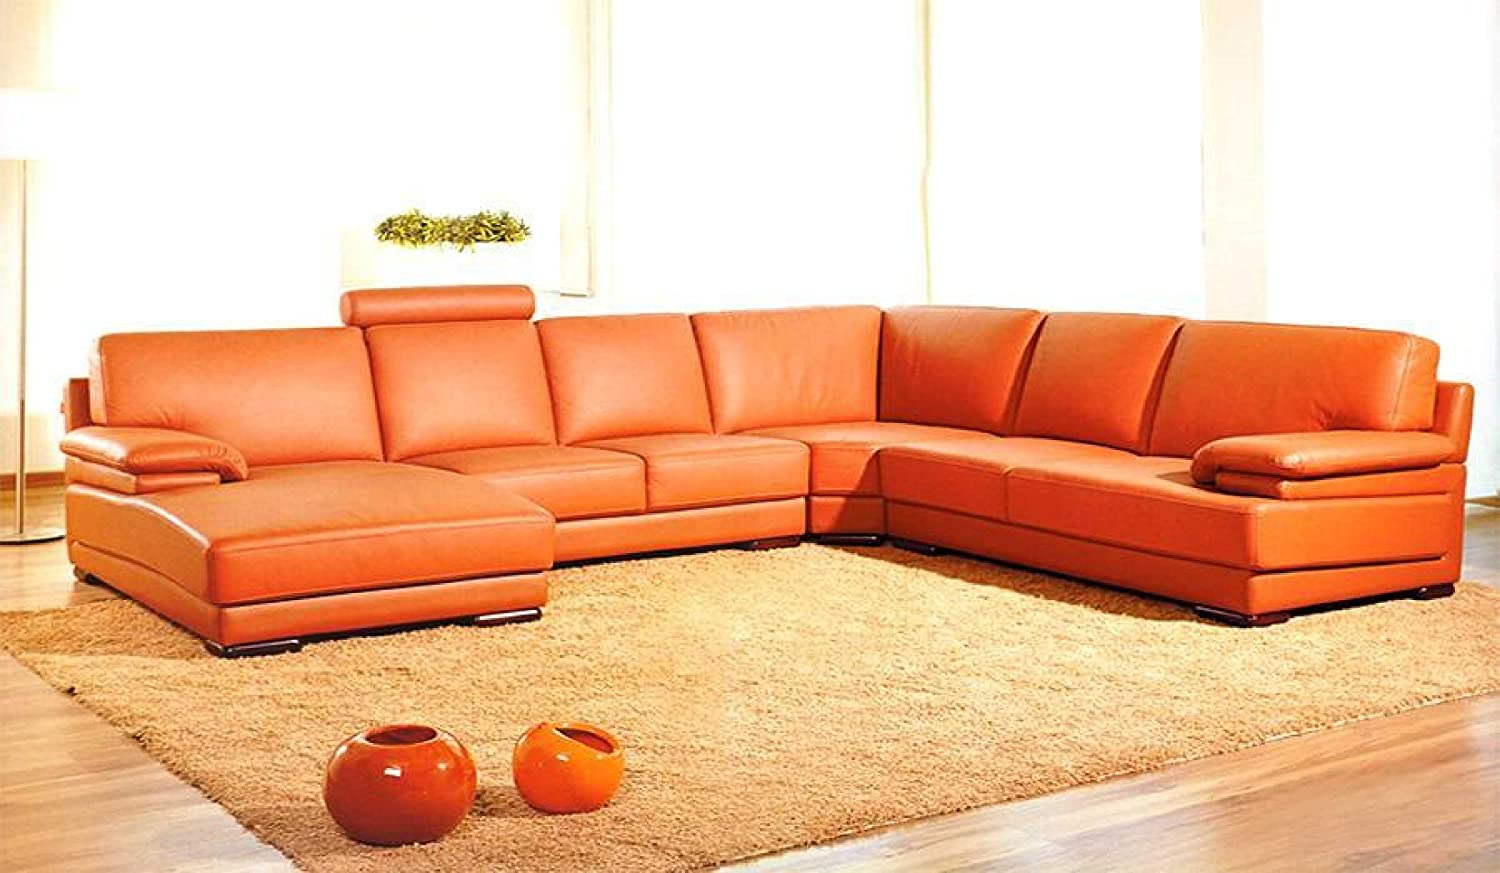 rooms sectionals tuscan reclining southern sofas l and couch fortscapes to chaise piece shaped wrap lounge microfiber sectional of tufted recliner full tan around luxury chenille size brown go grain sofa large with by black motion natuzzi awesome corduroy leather oversized abbyson top